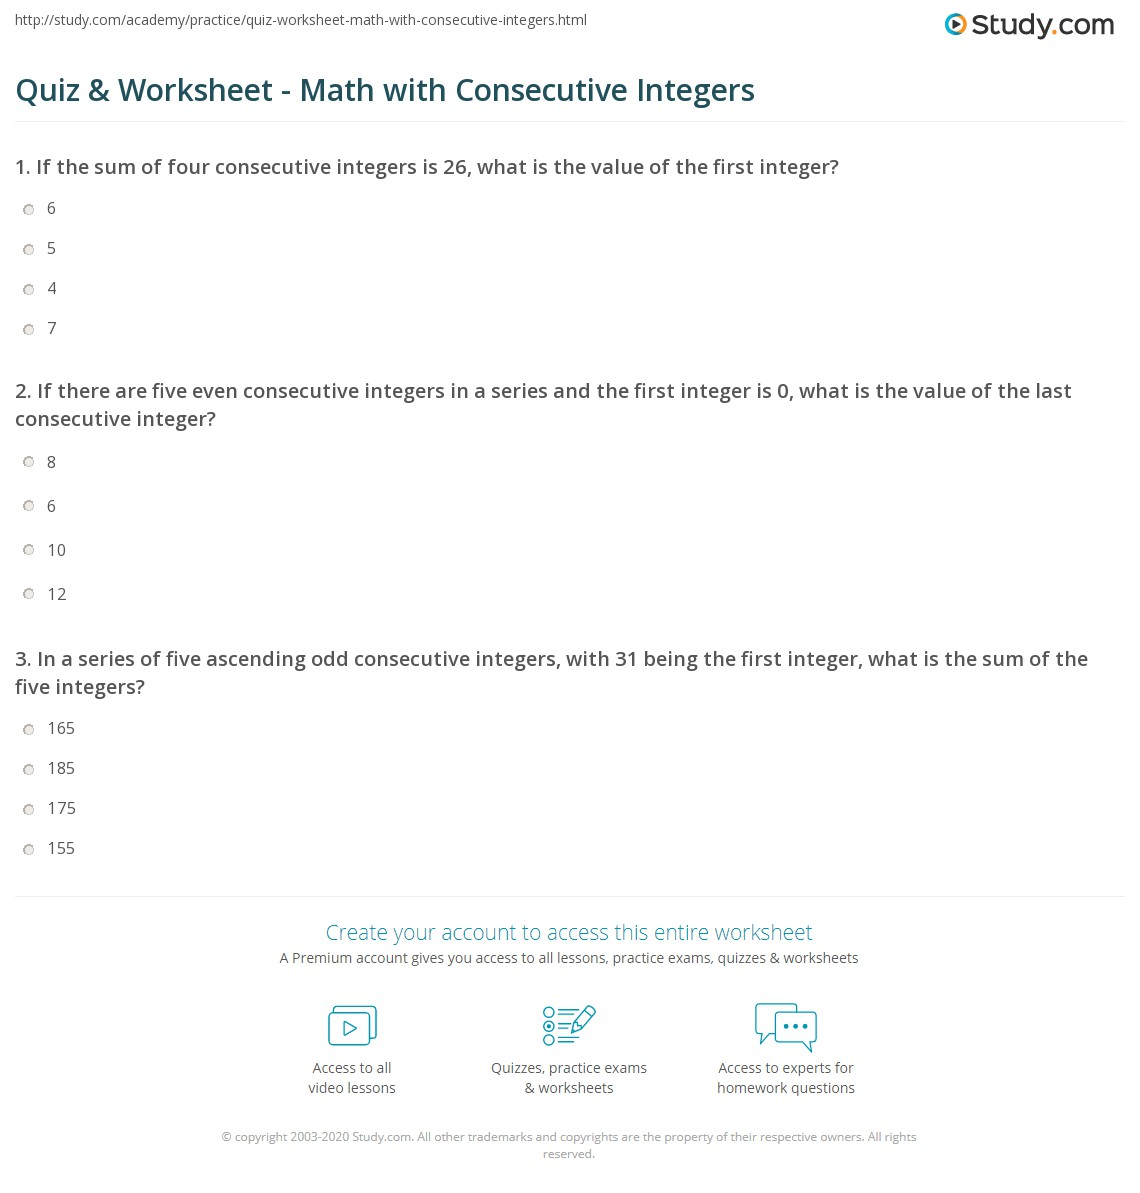 worksheet Consecutive Integer Problems Worksheet quiz worksheet math with consecutive integers study com print definition formula worksheet